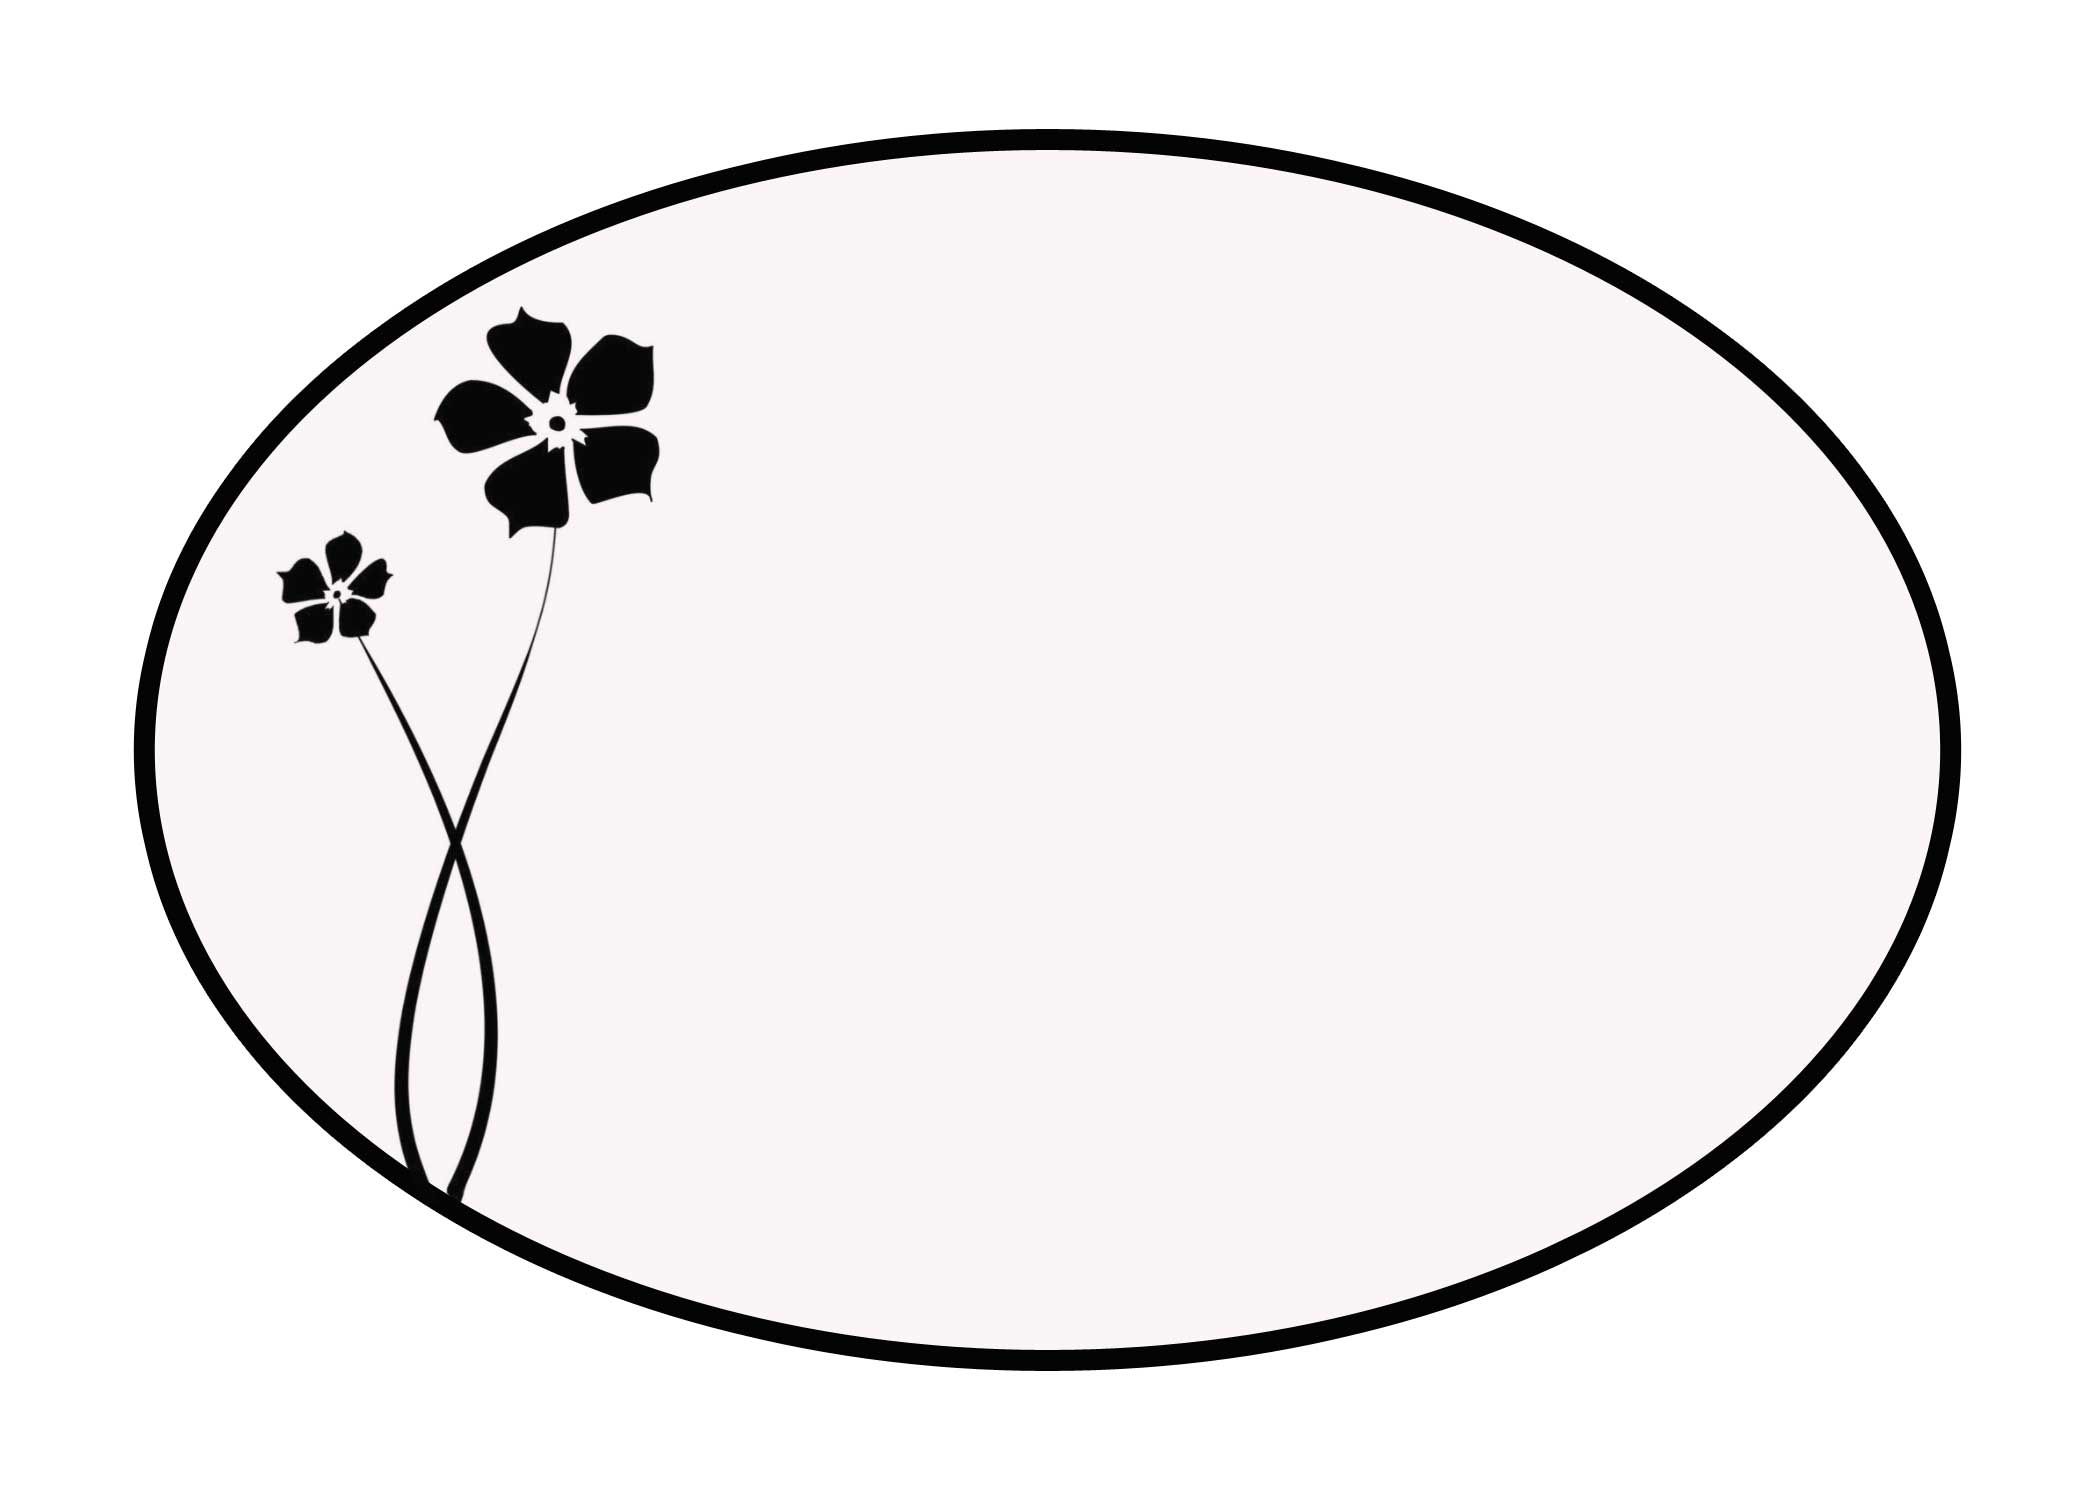 Free Oval Outline Cliparts, Download Free Clip Art, Free.